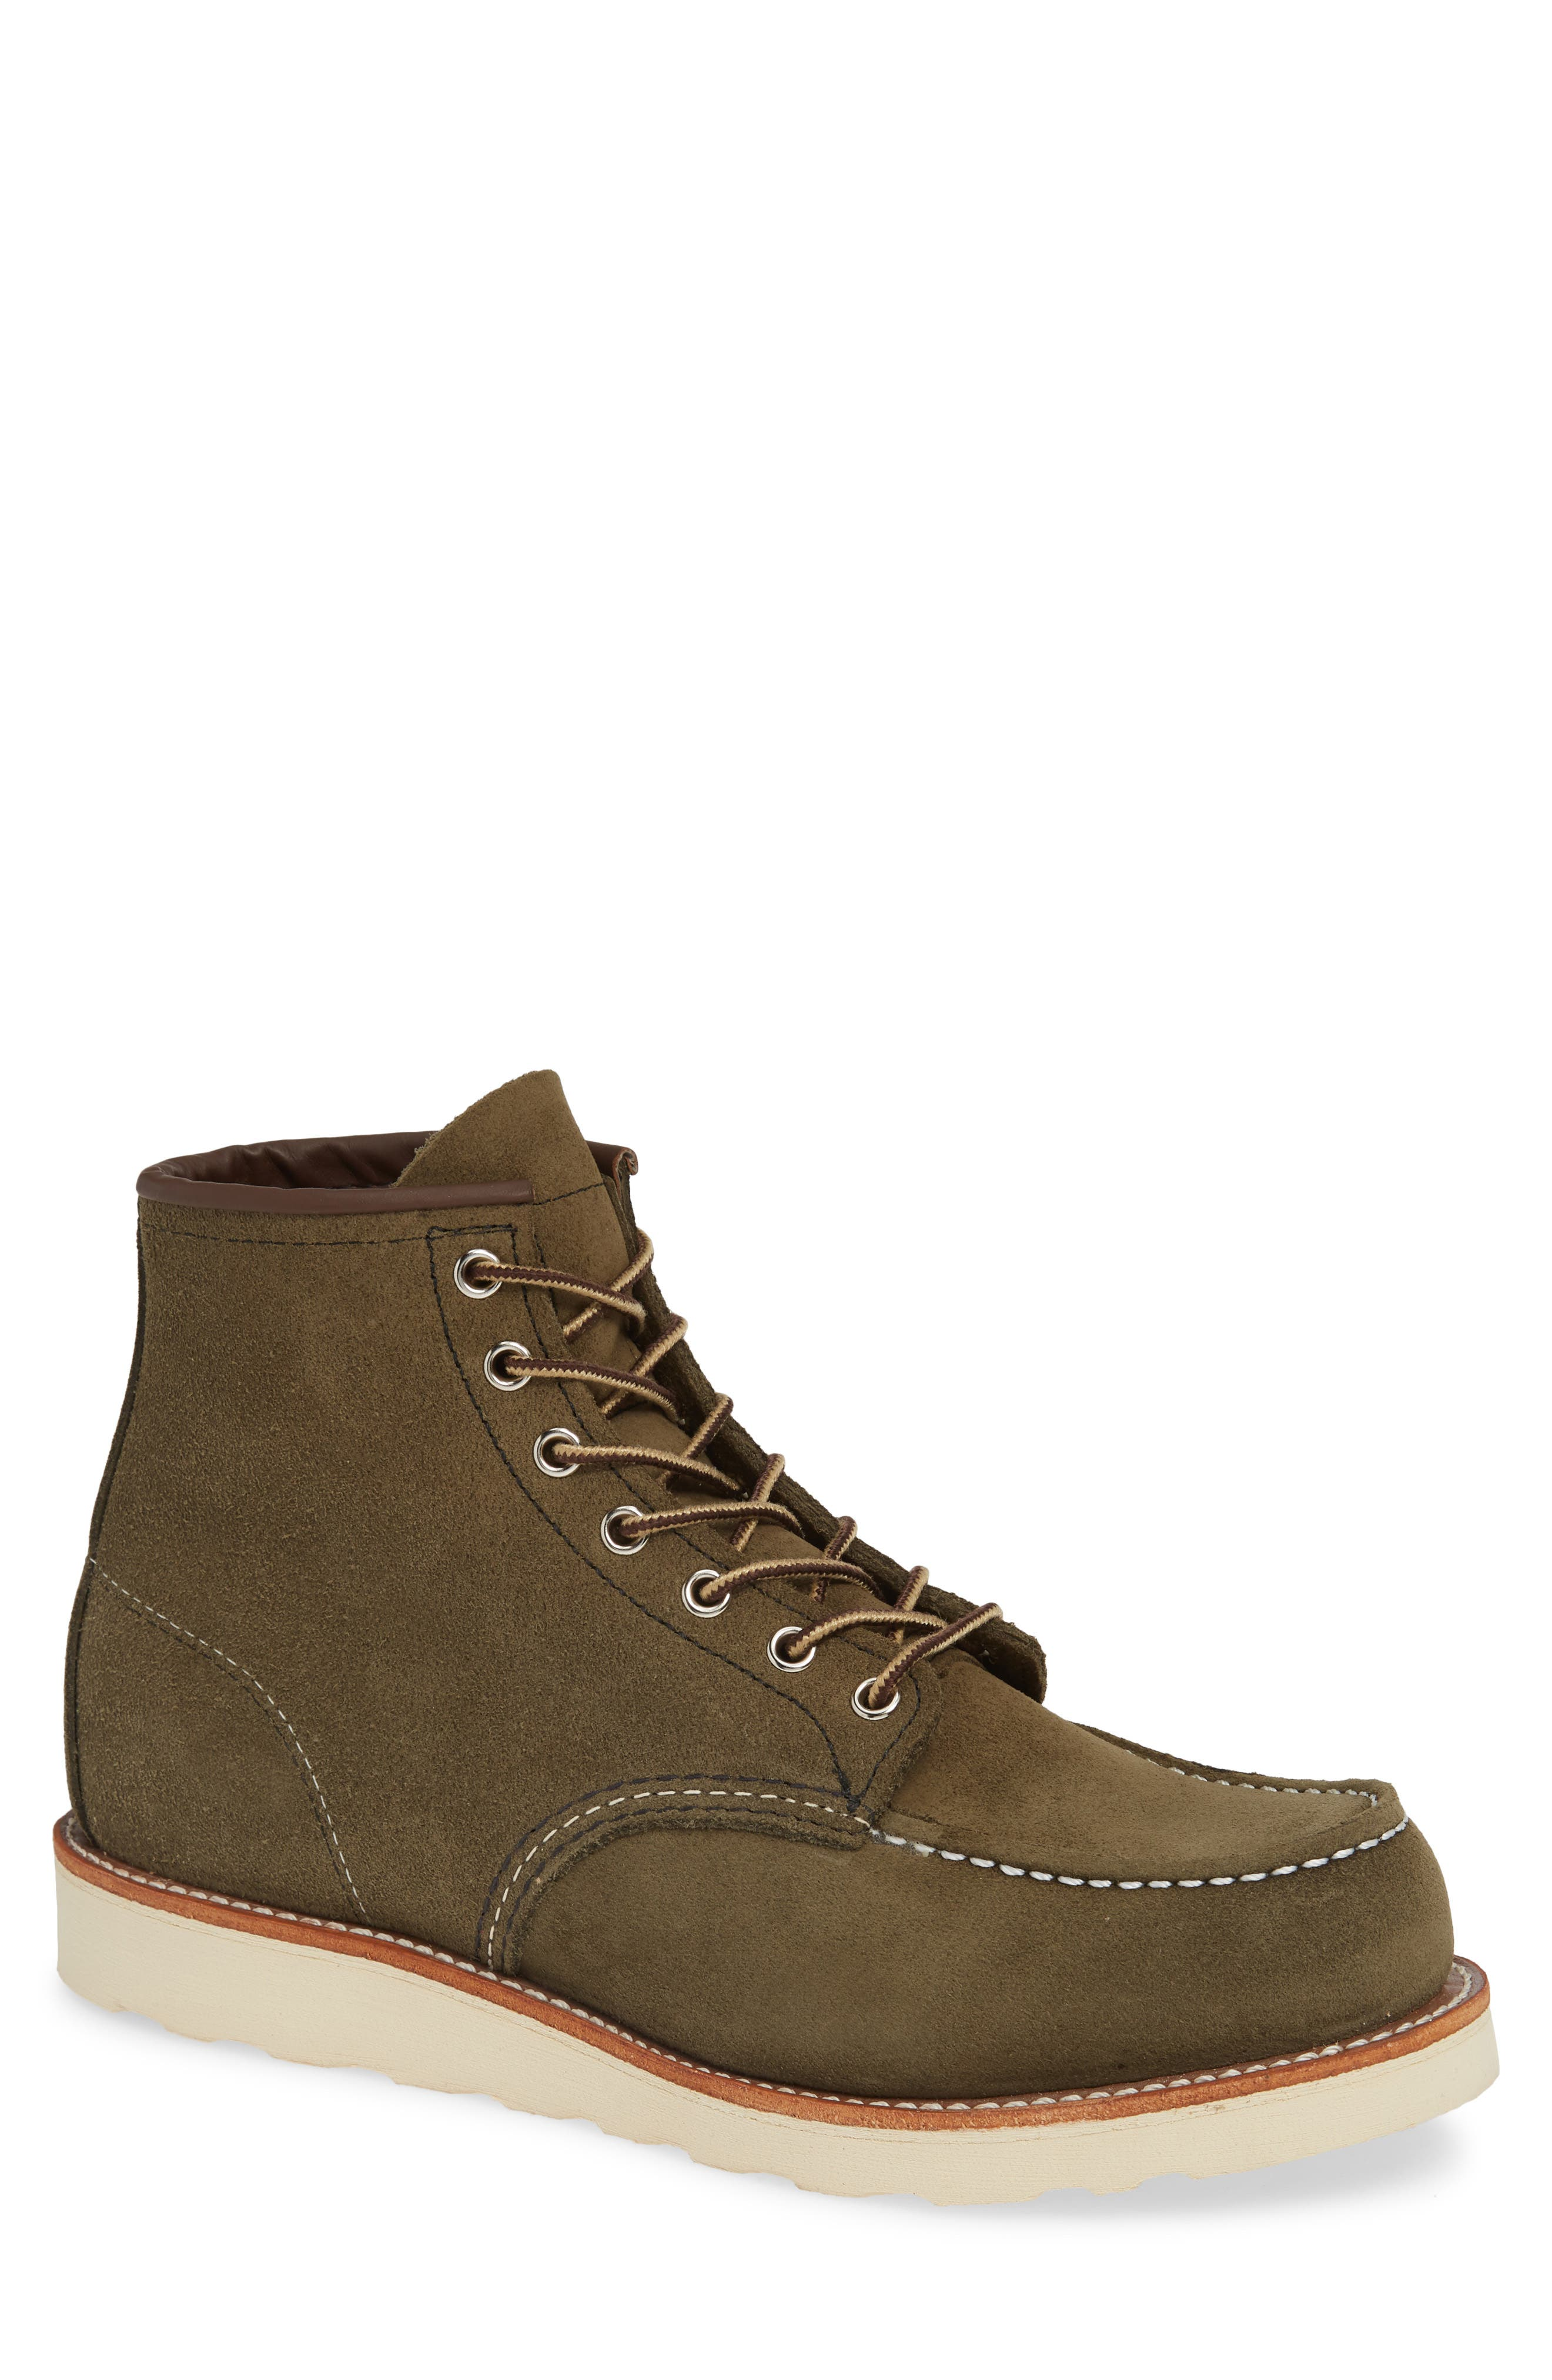 RED WING 6 Inch Moc Toe Boot, Main, color, LODEN ABILENE LEATHER